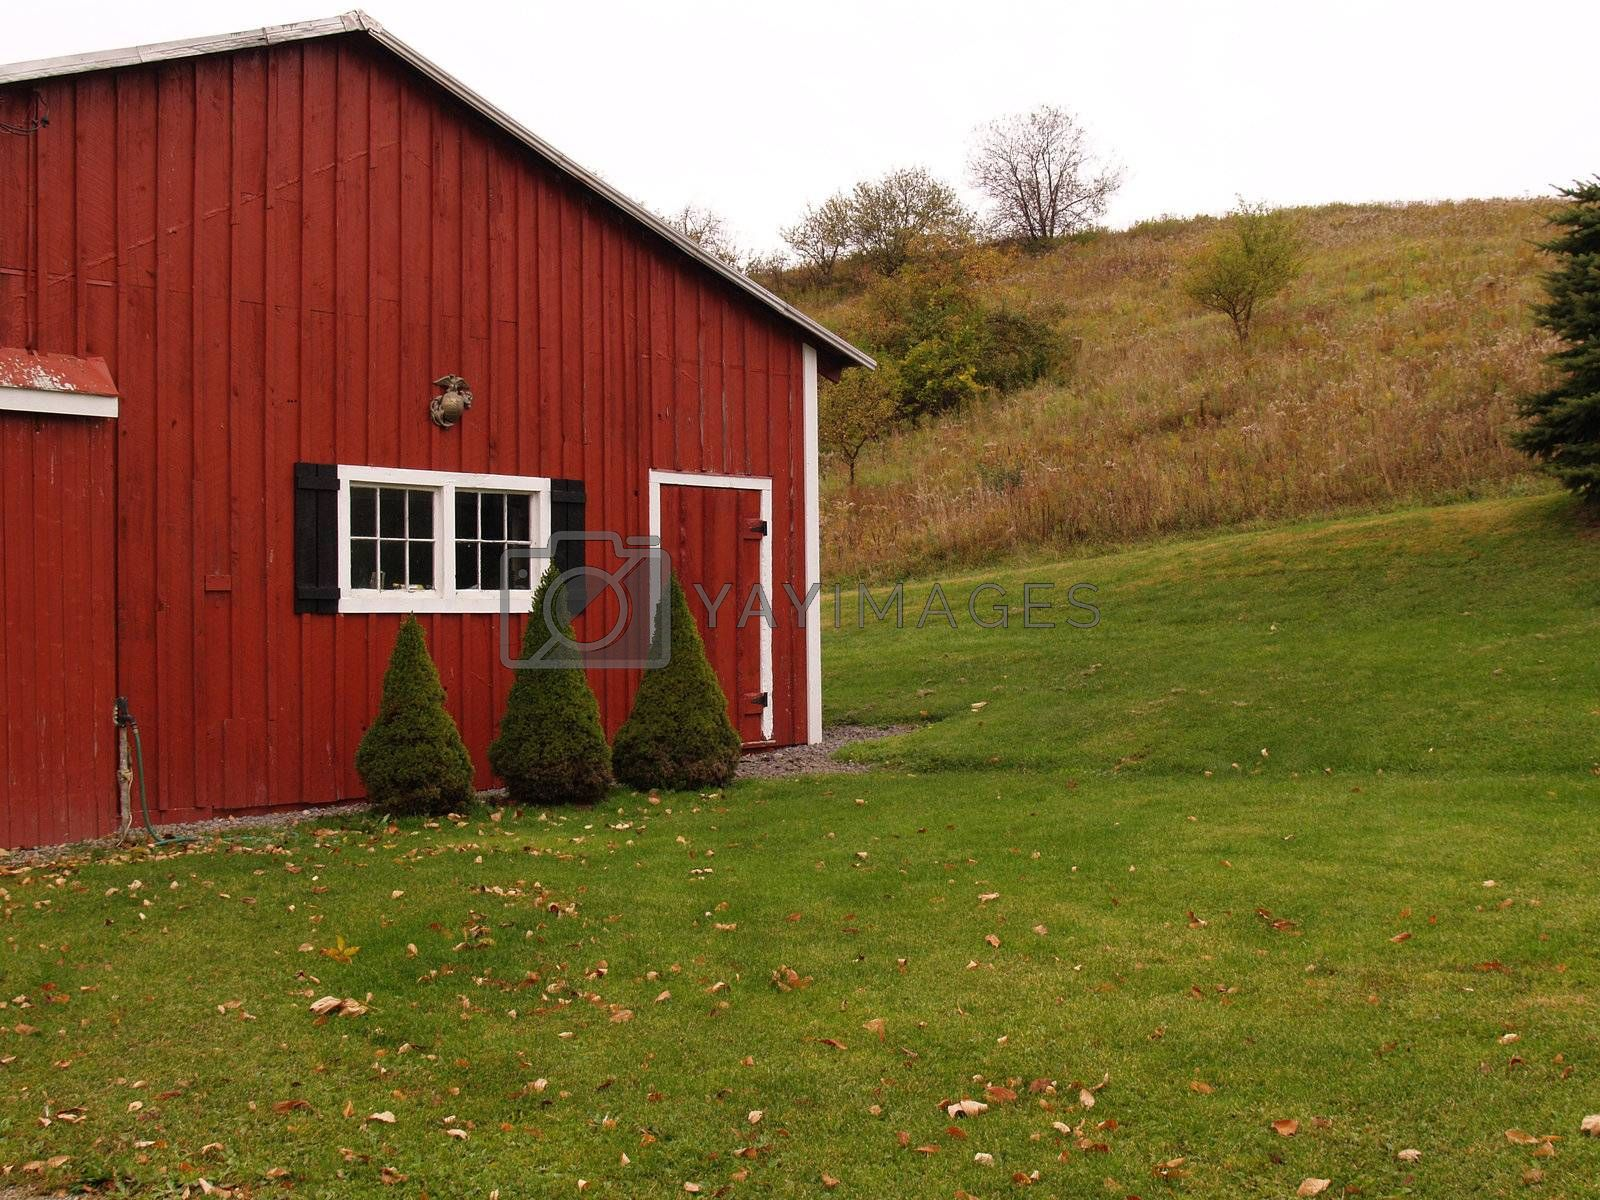 red outdoor utility building by grass and a hill